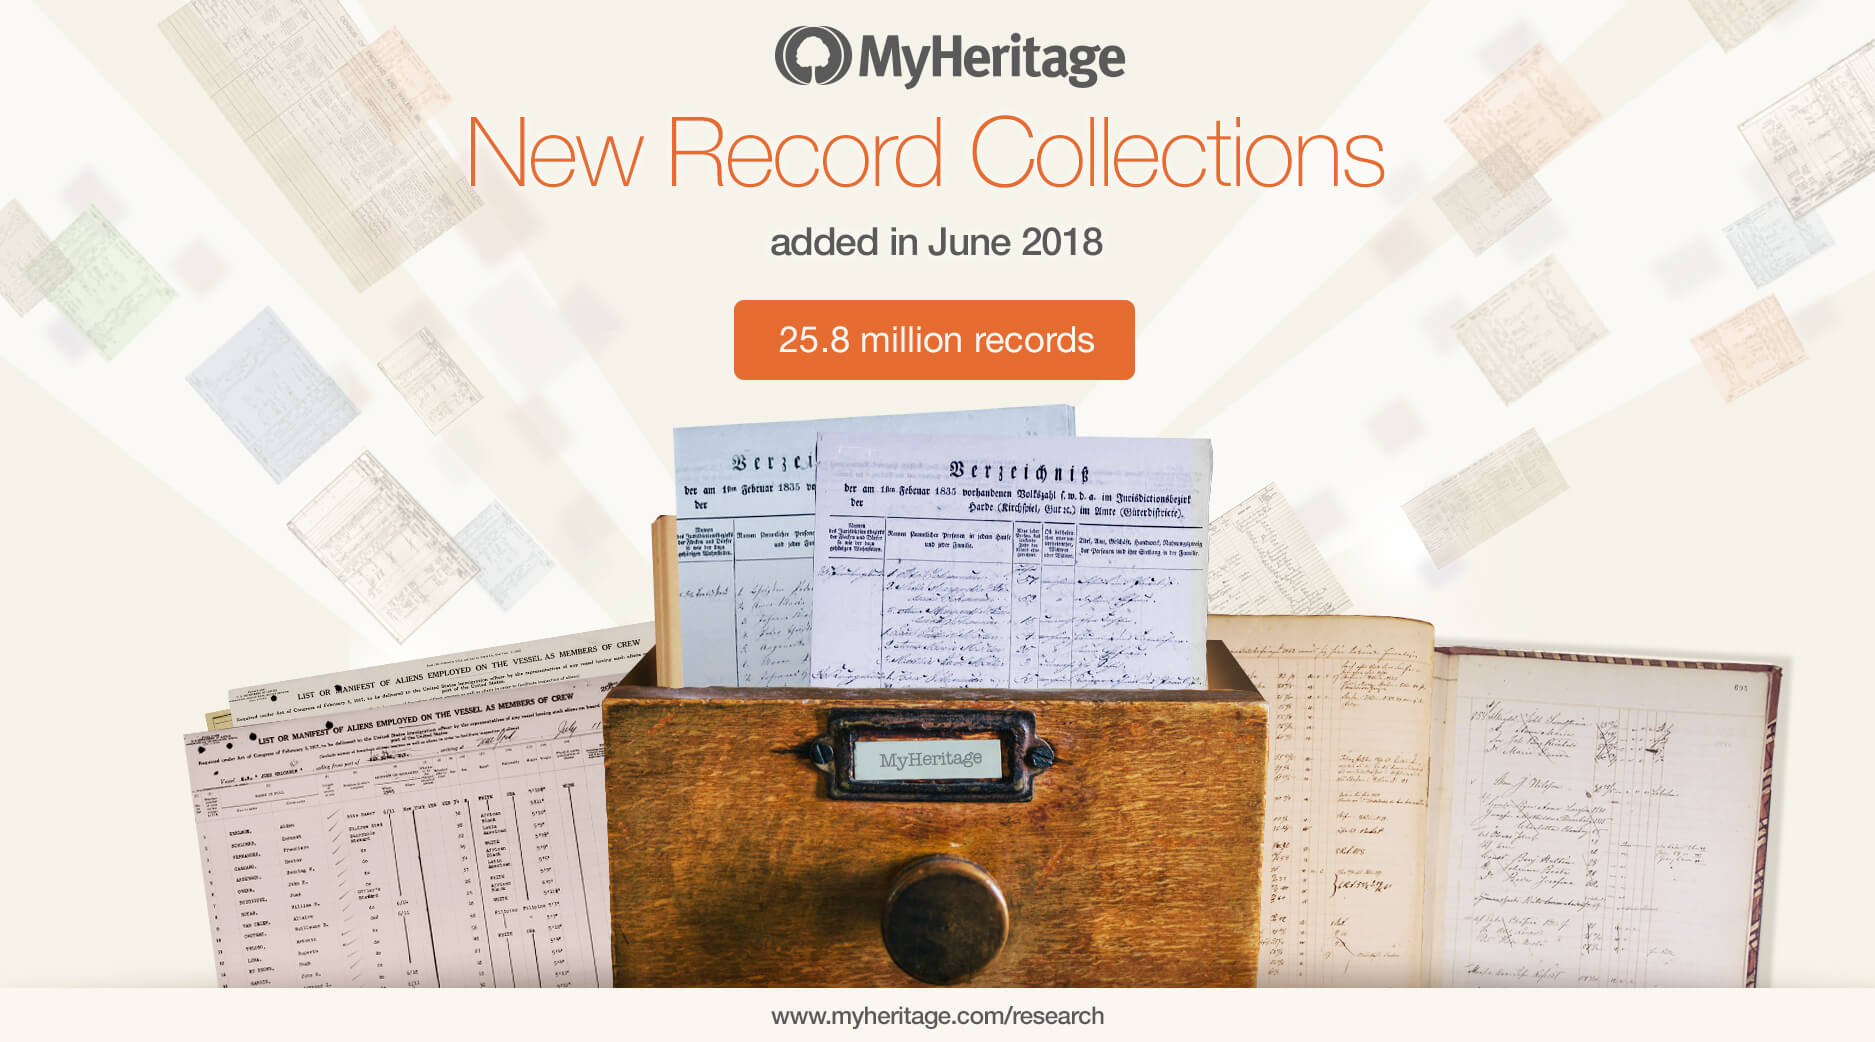 New Historical Records Added in June 2018